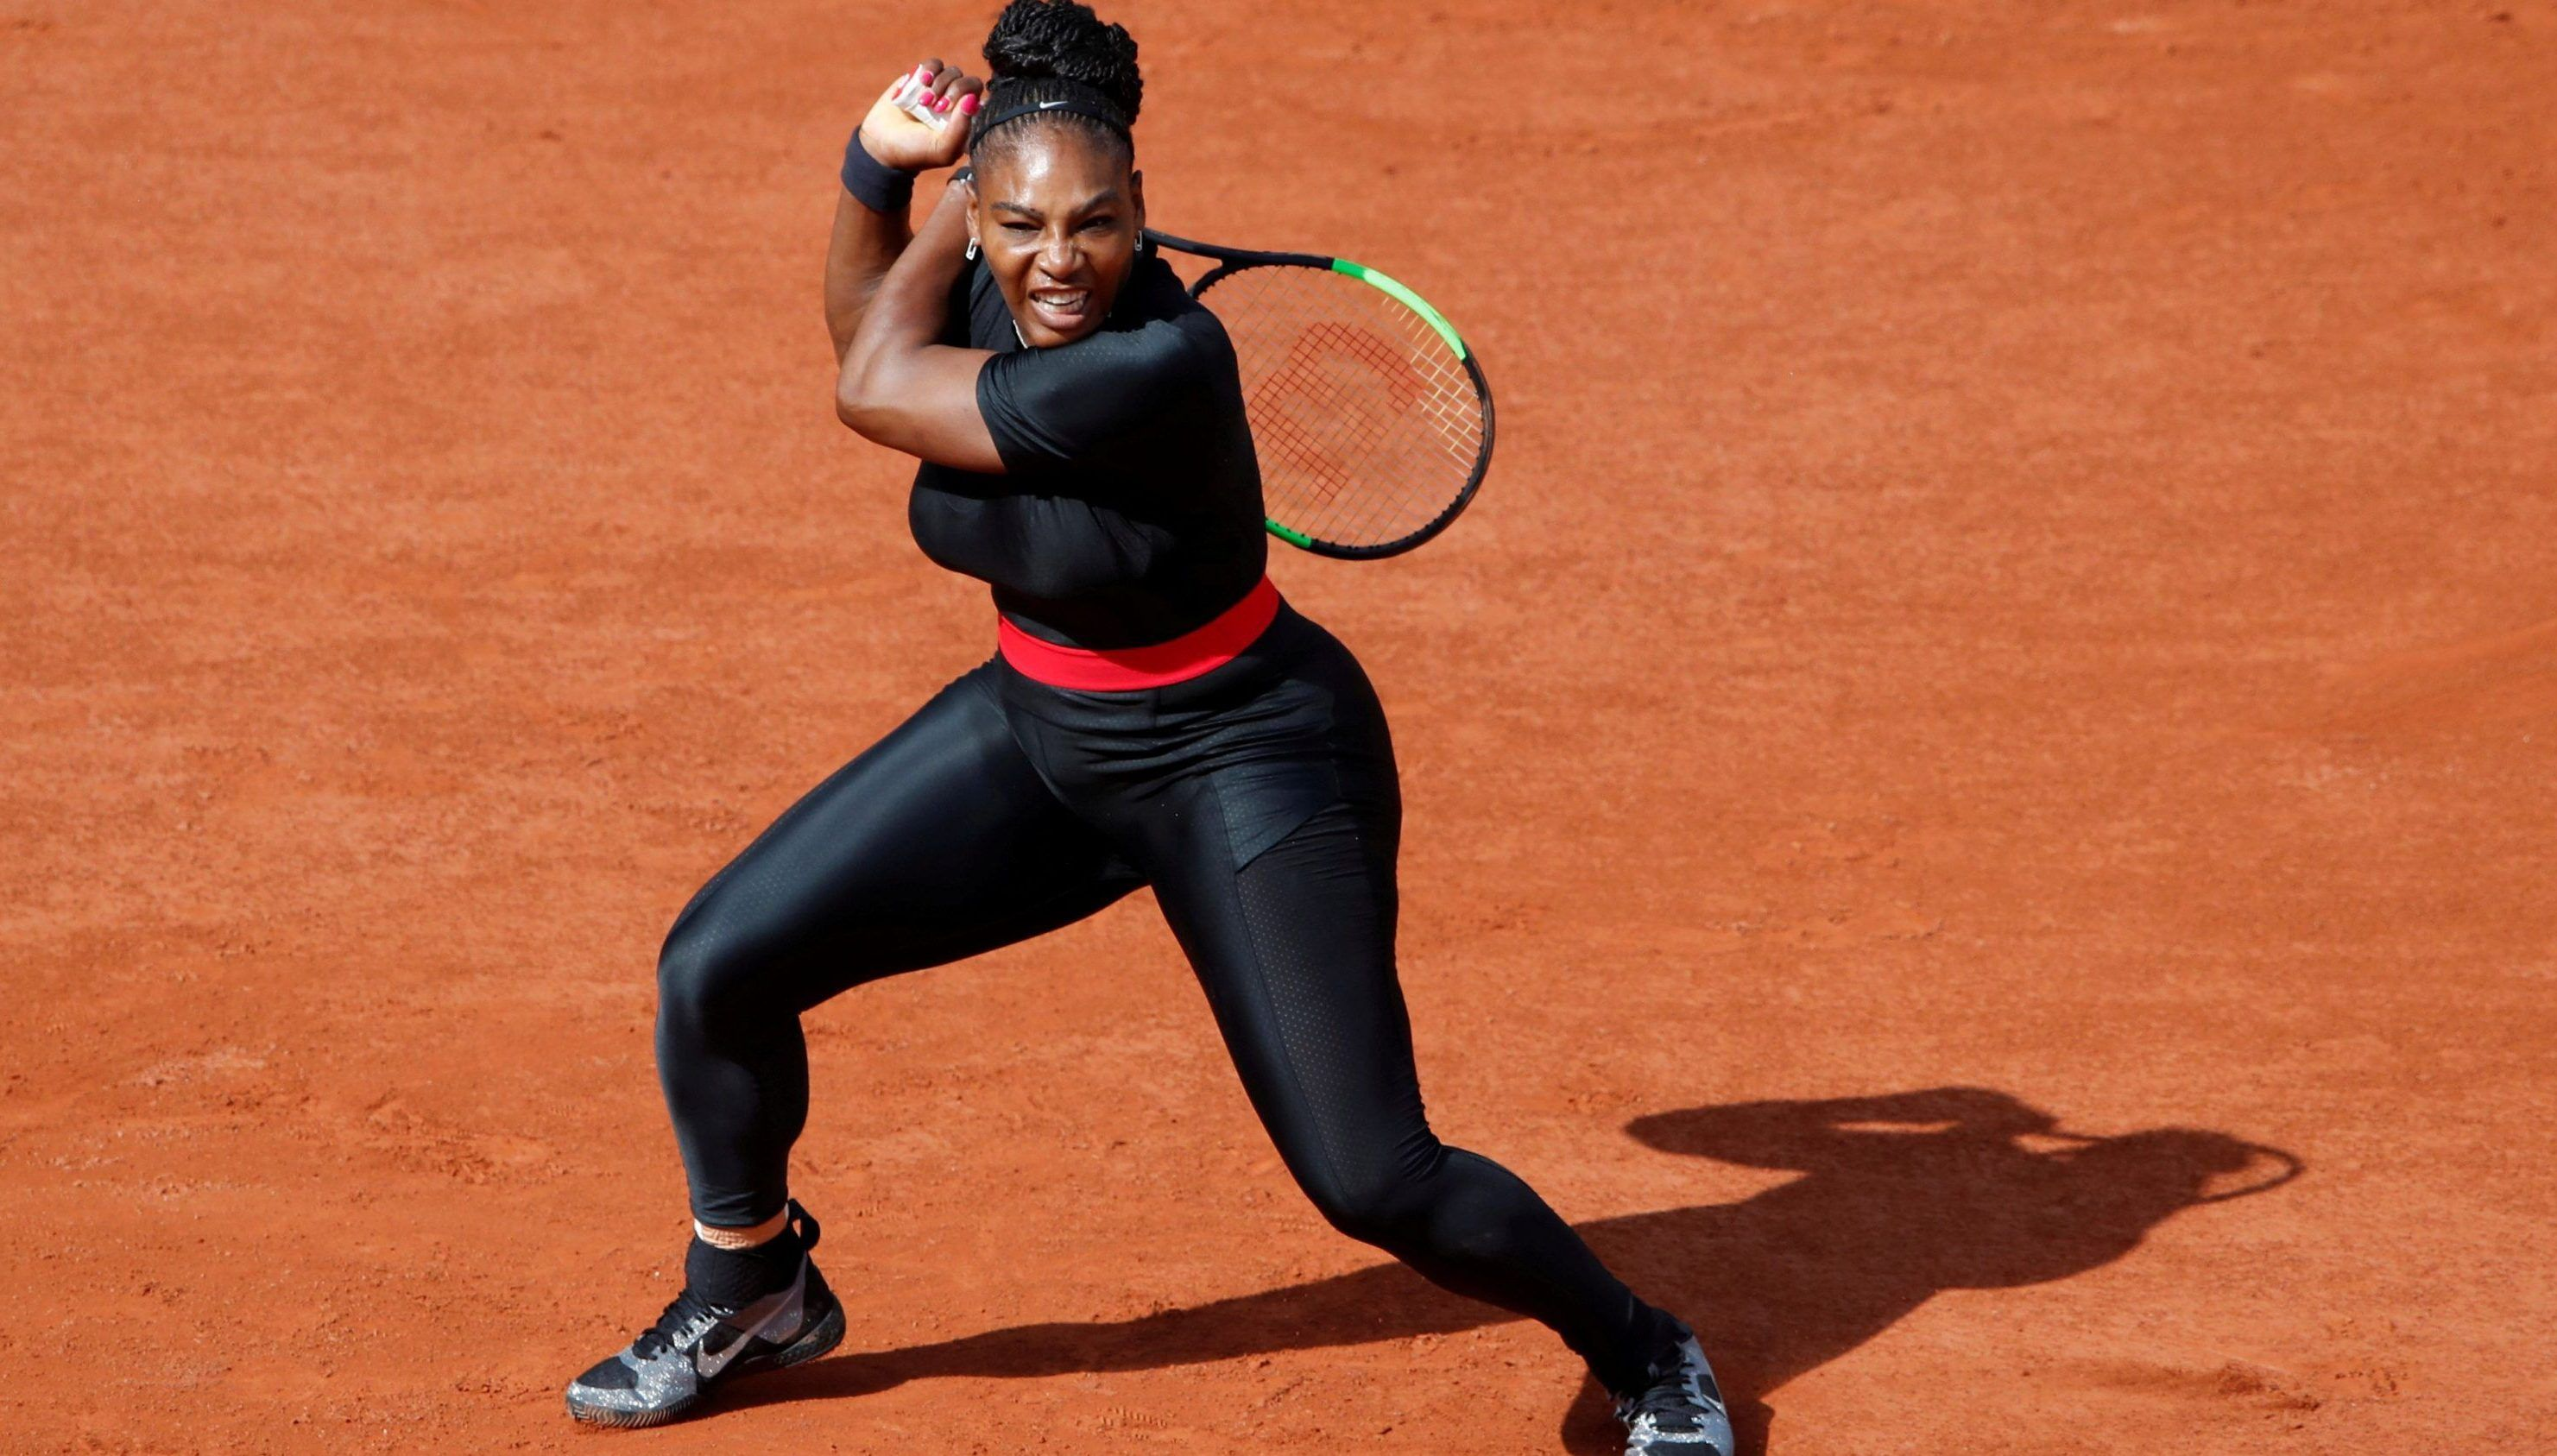 Serena Williams' catsuit prompted the French Open to change its dress code.